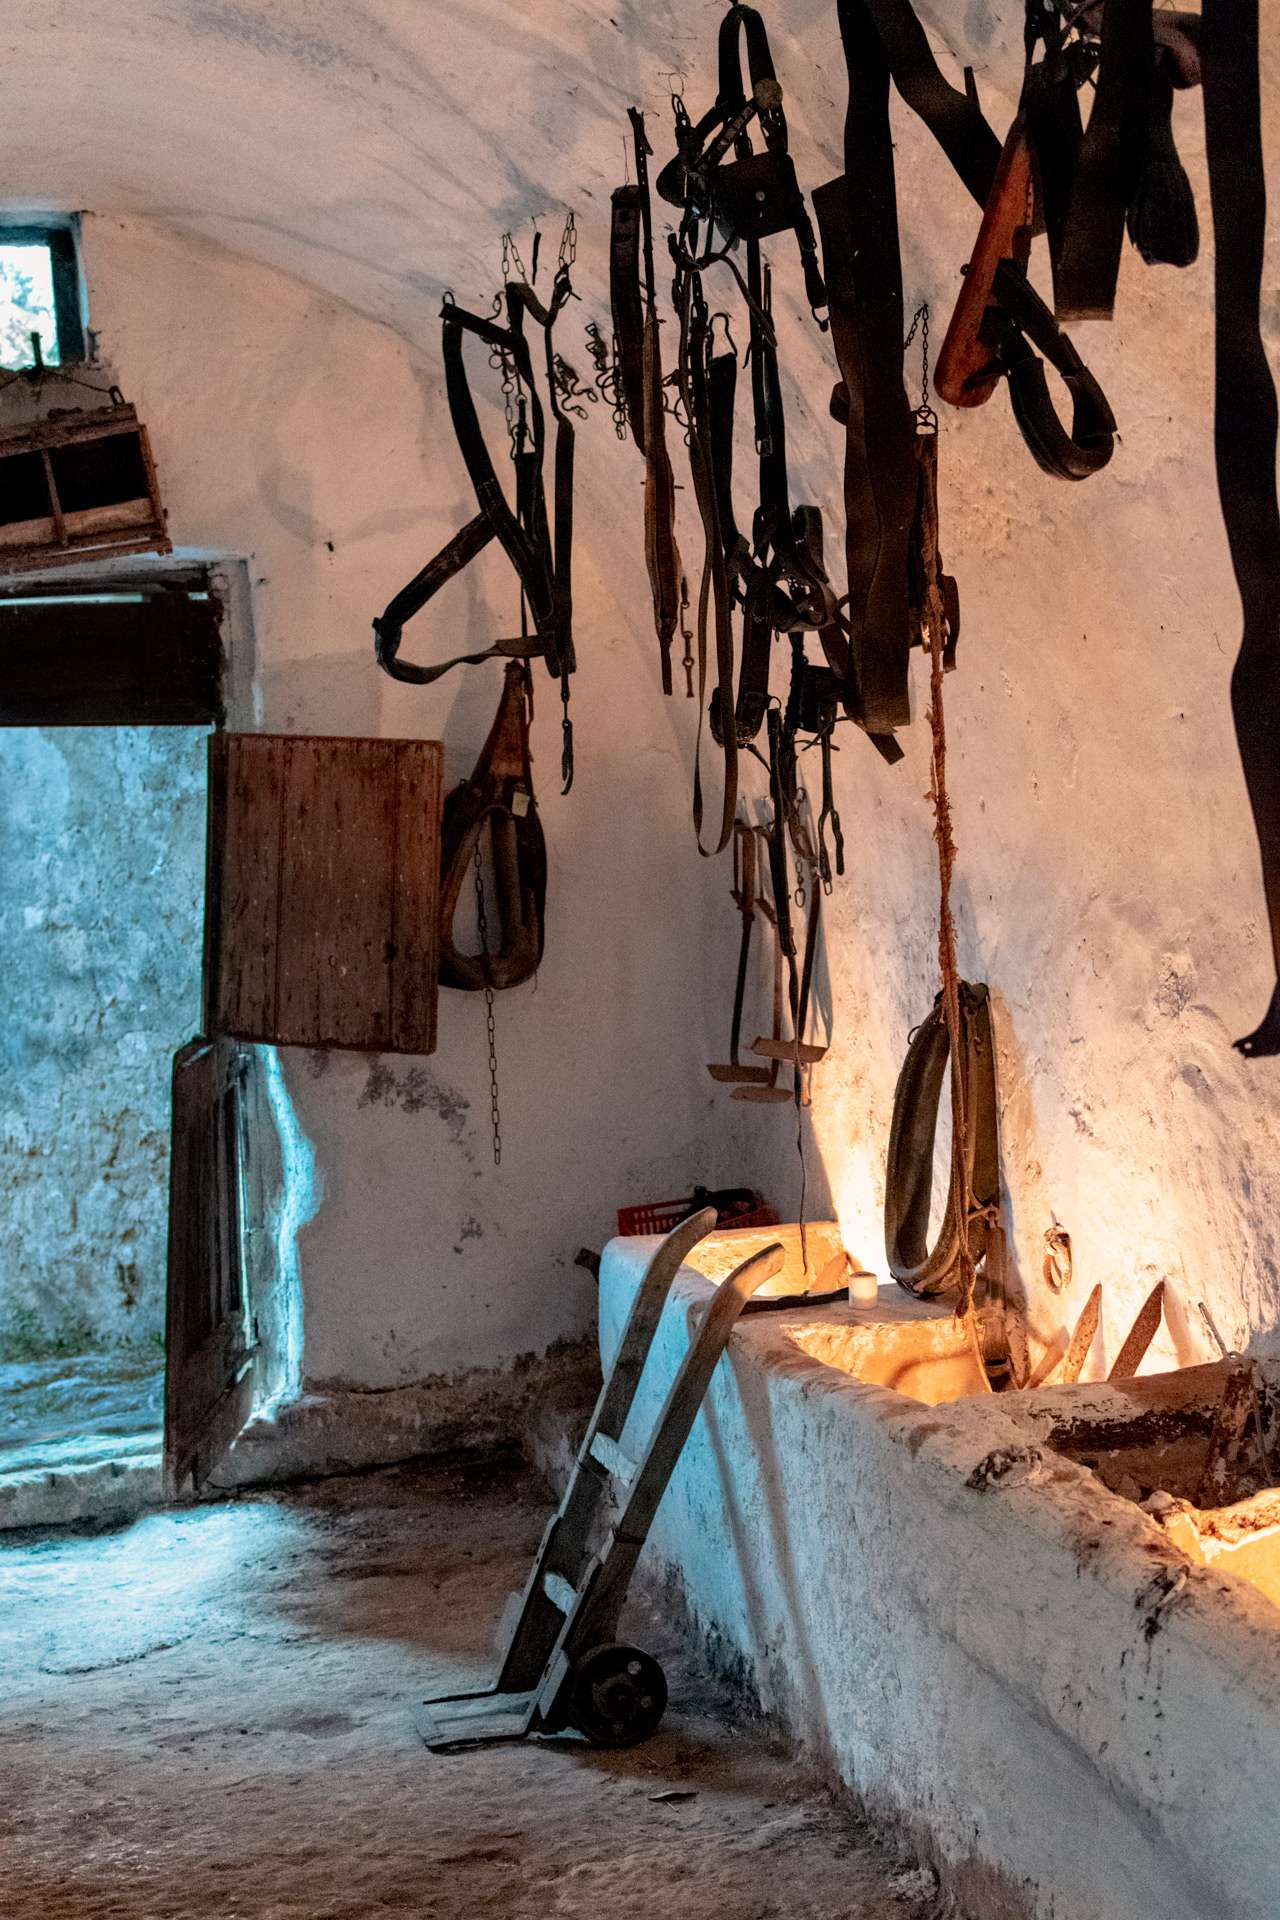 Horse equipment in the stable at Masseria Spina Resort in Puglia